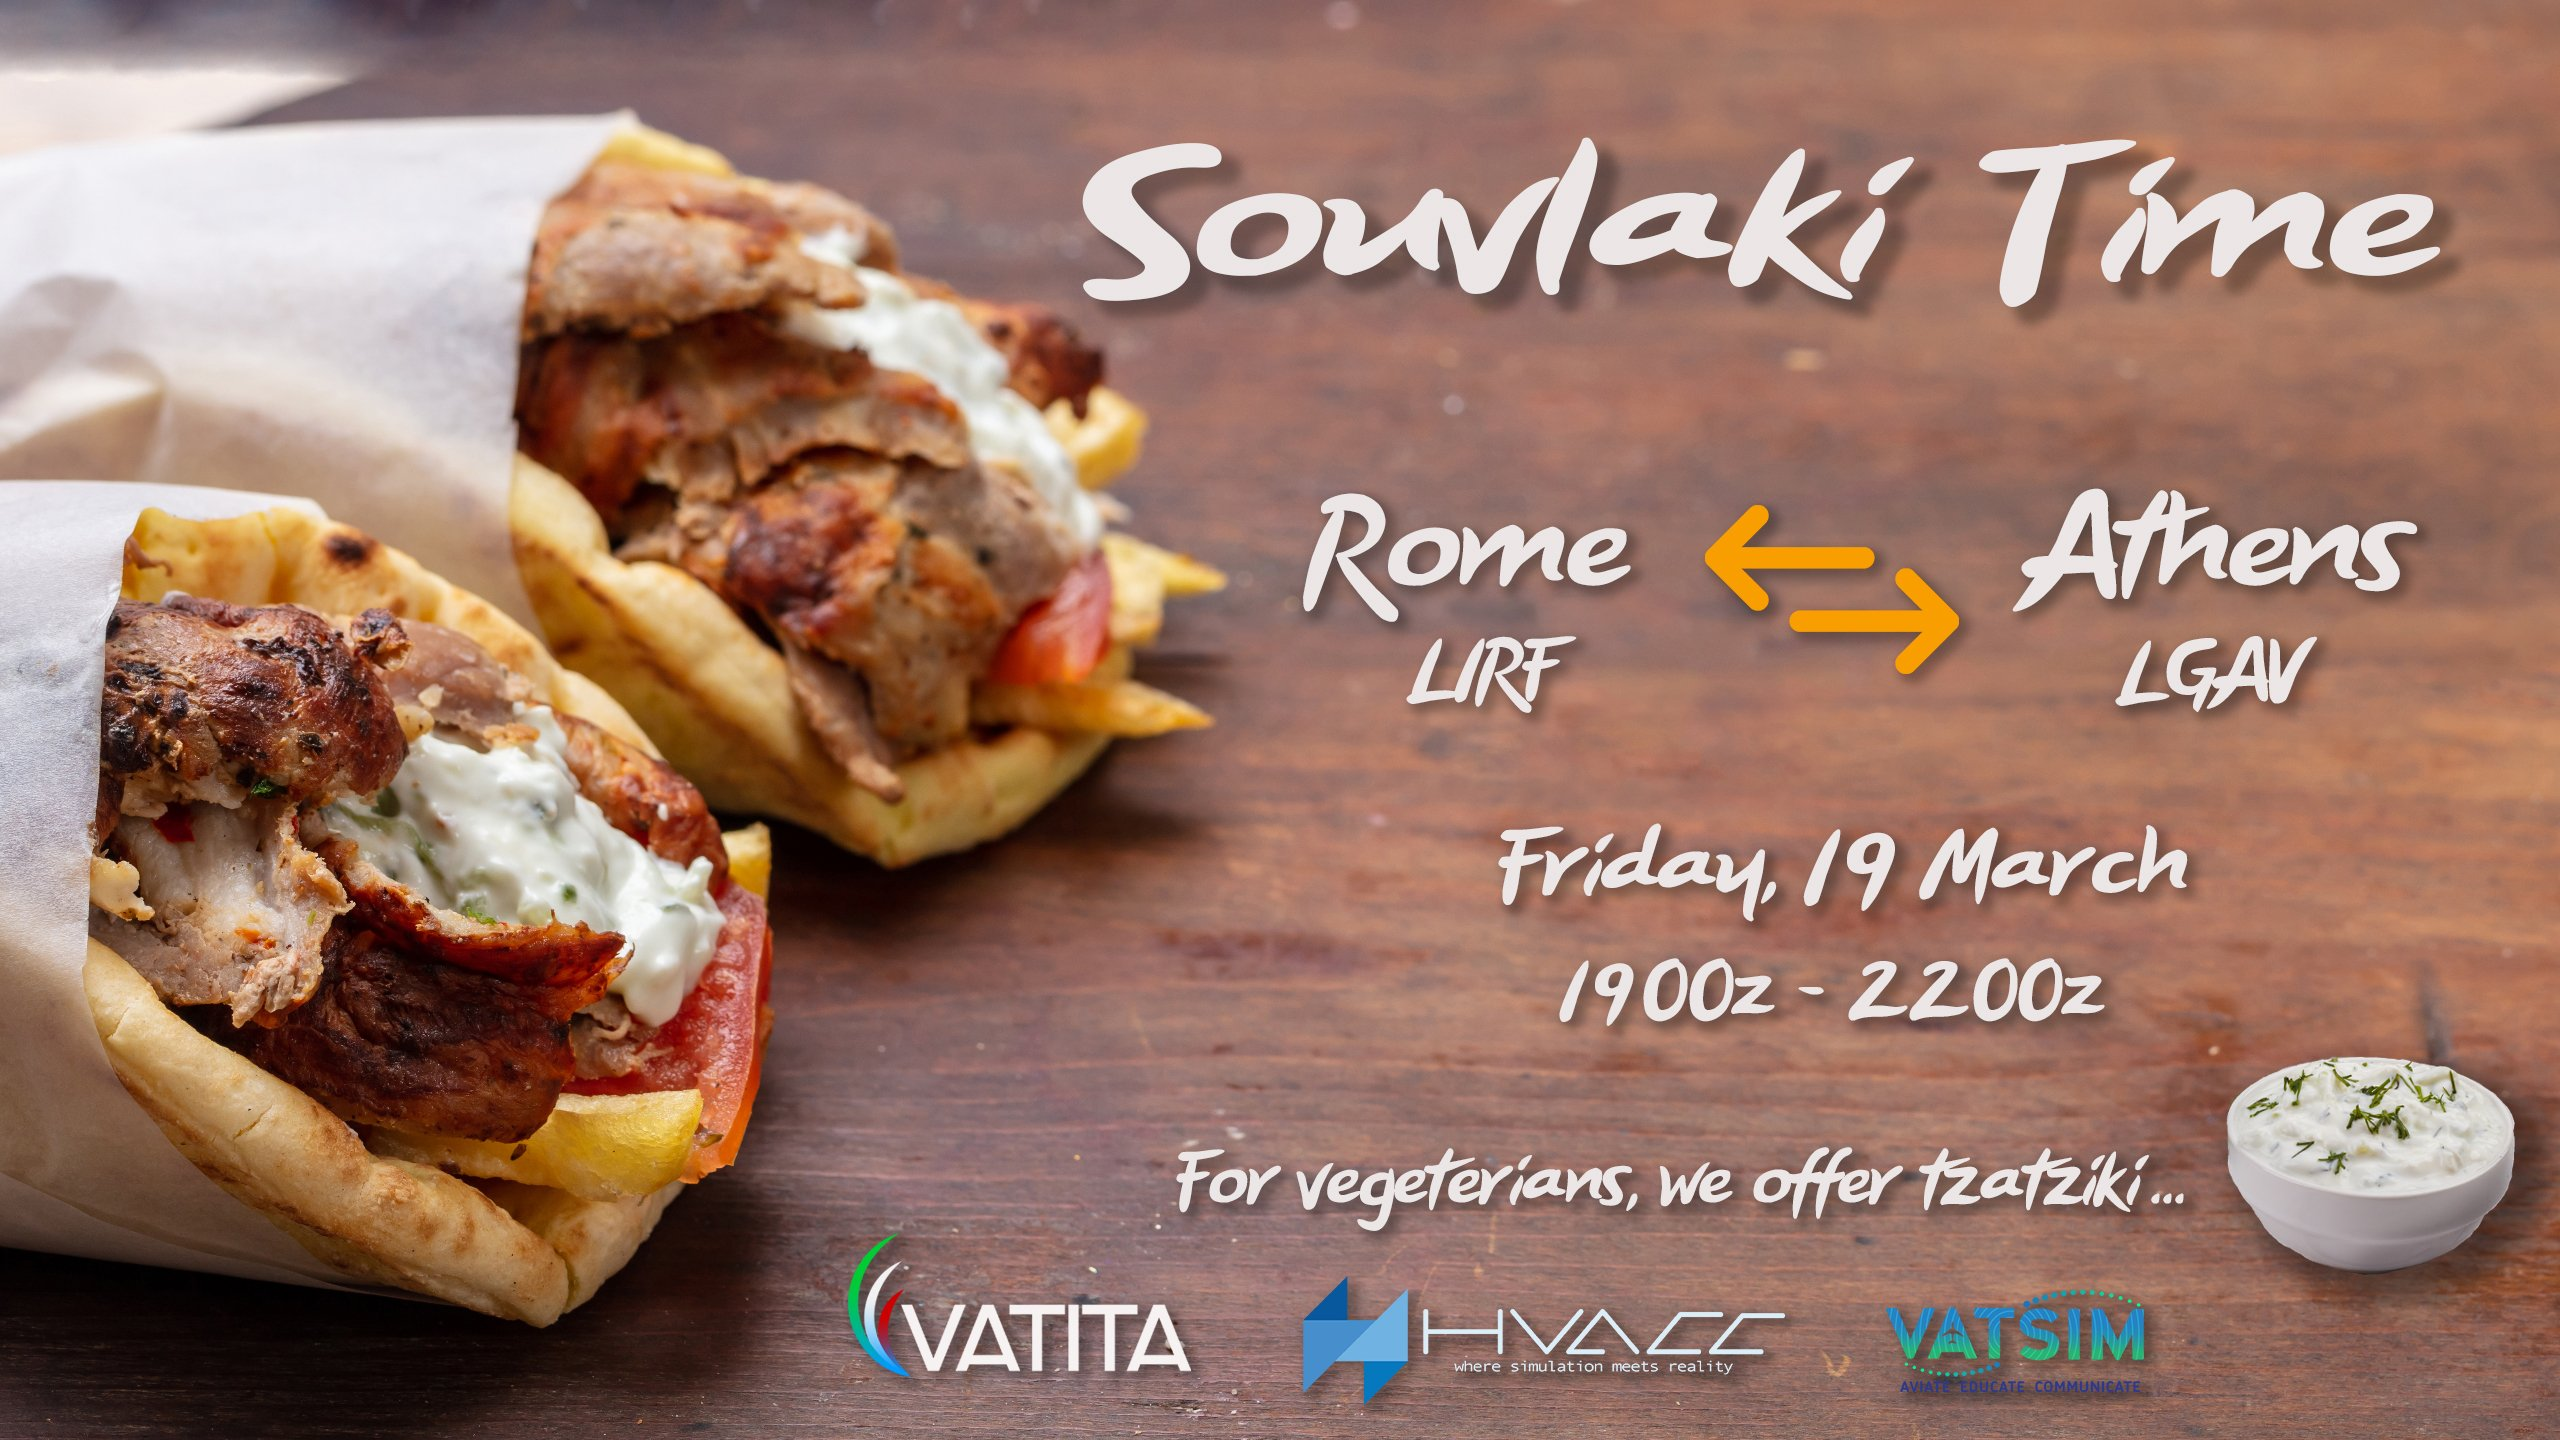 Souvlaki Time! Rome-Athens City Link | Friday 19 March| 21:00 - 24:00 local